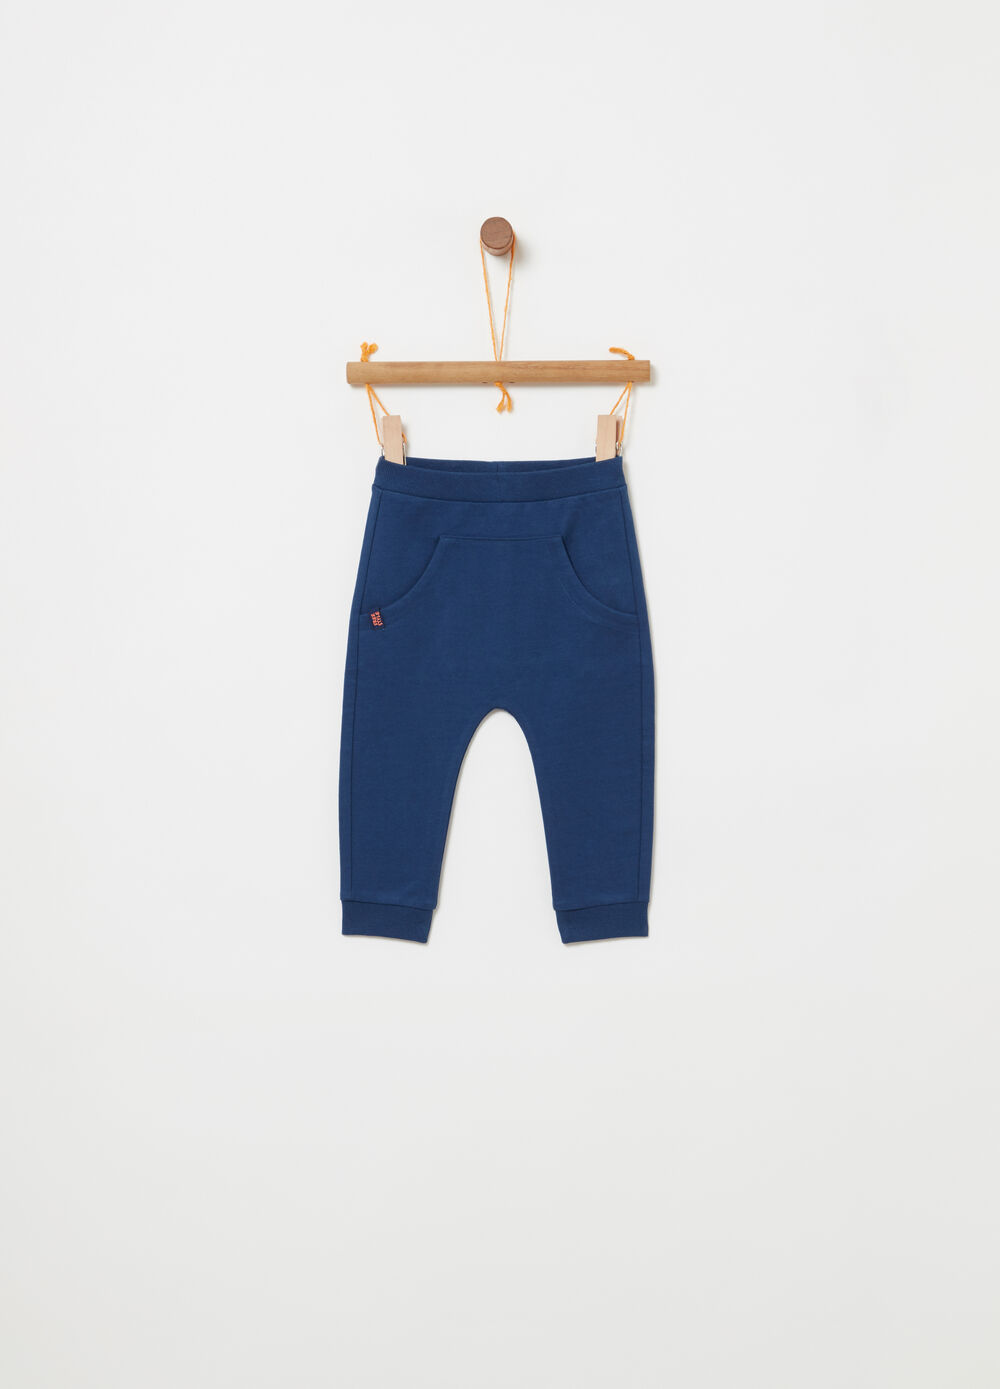 French terry trousers with pouch pocket